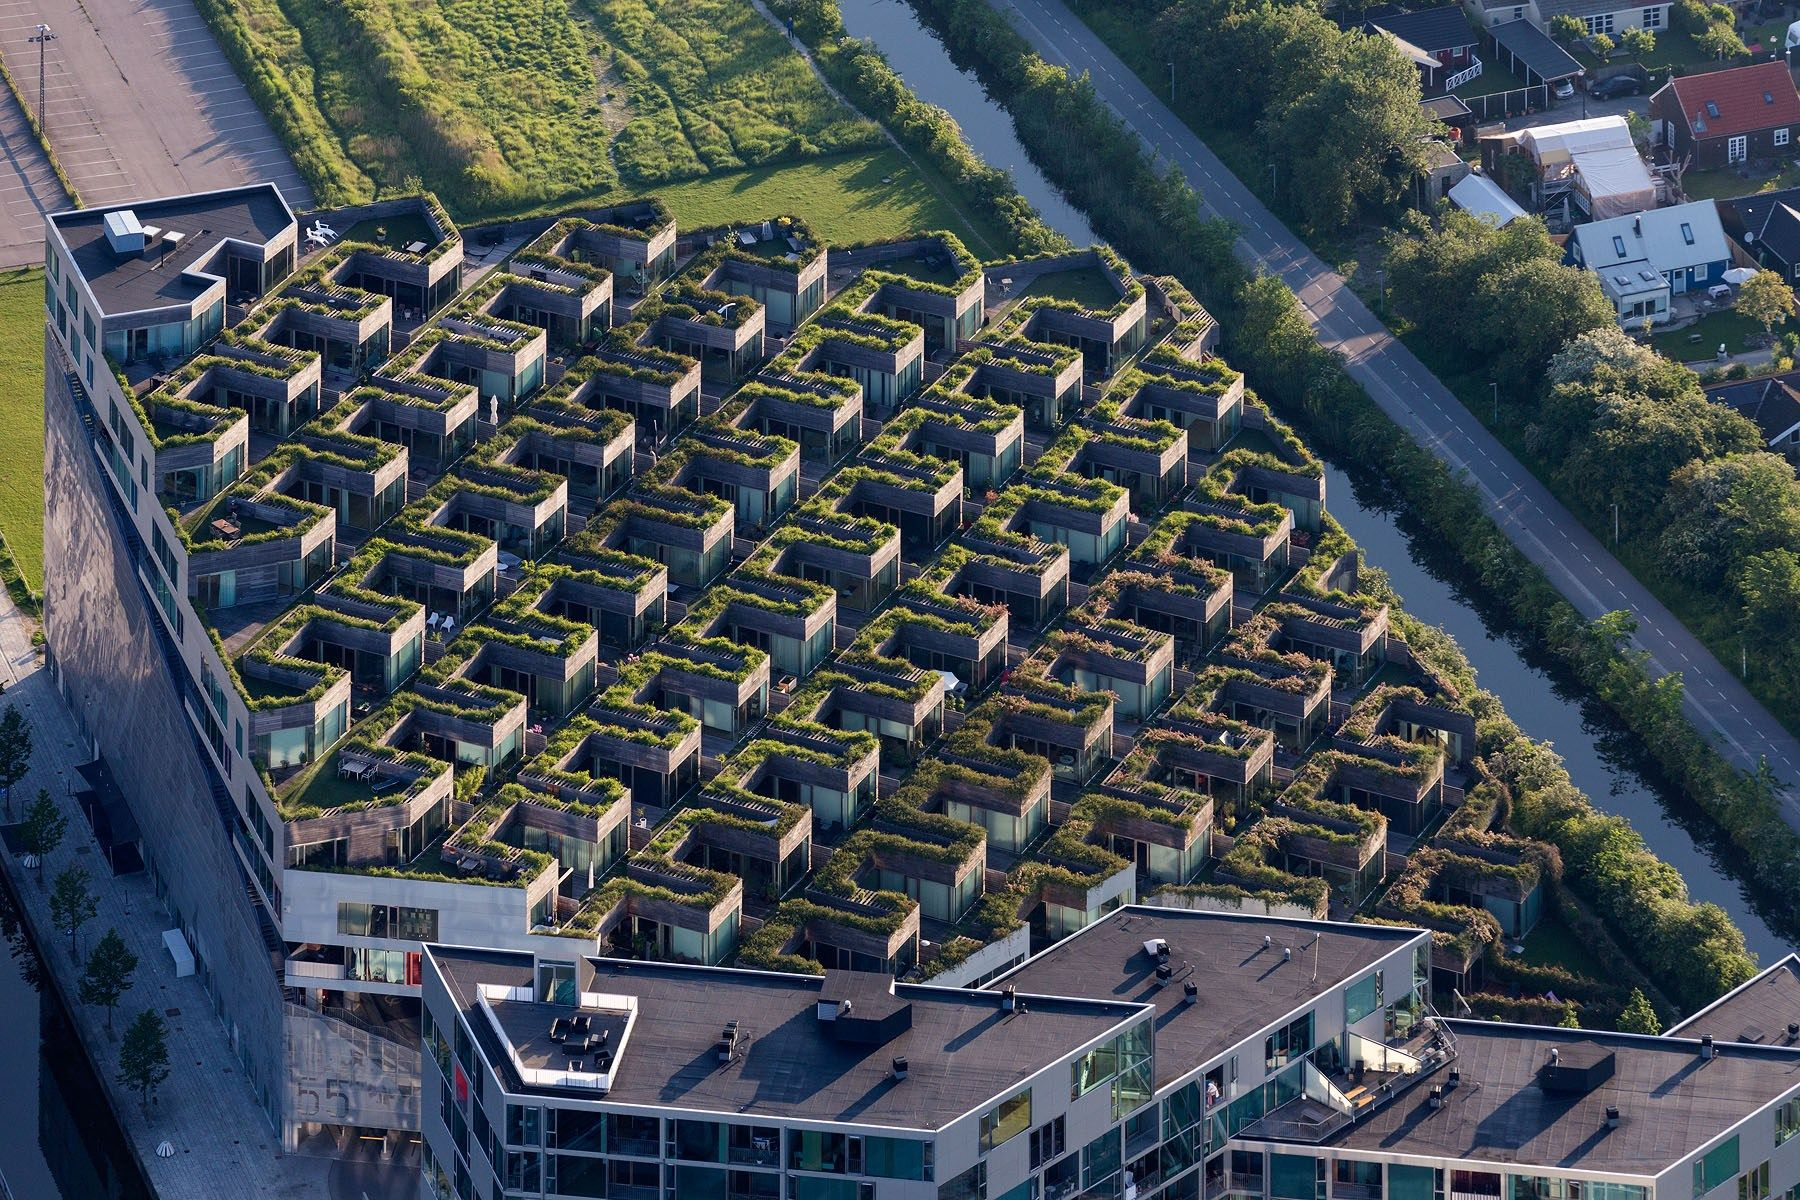 Design Construction Et Associés Granville mountain dwellings, copenhagen – bjarke ingels + julien de smedt